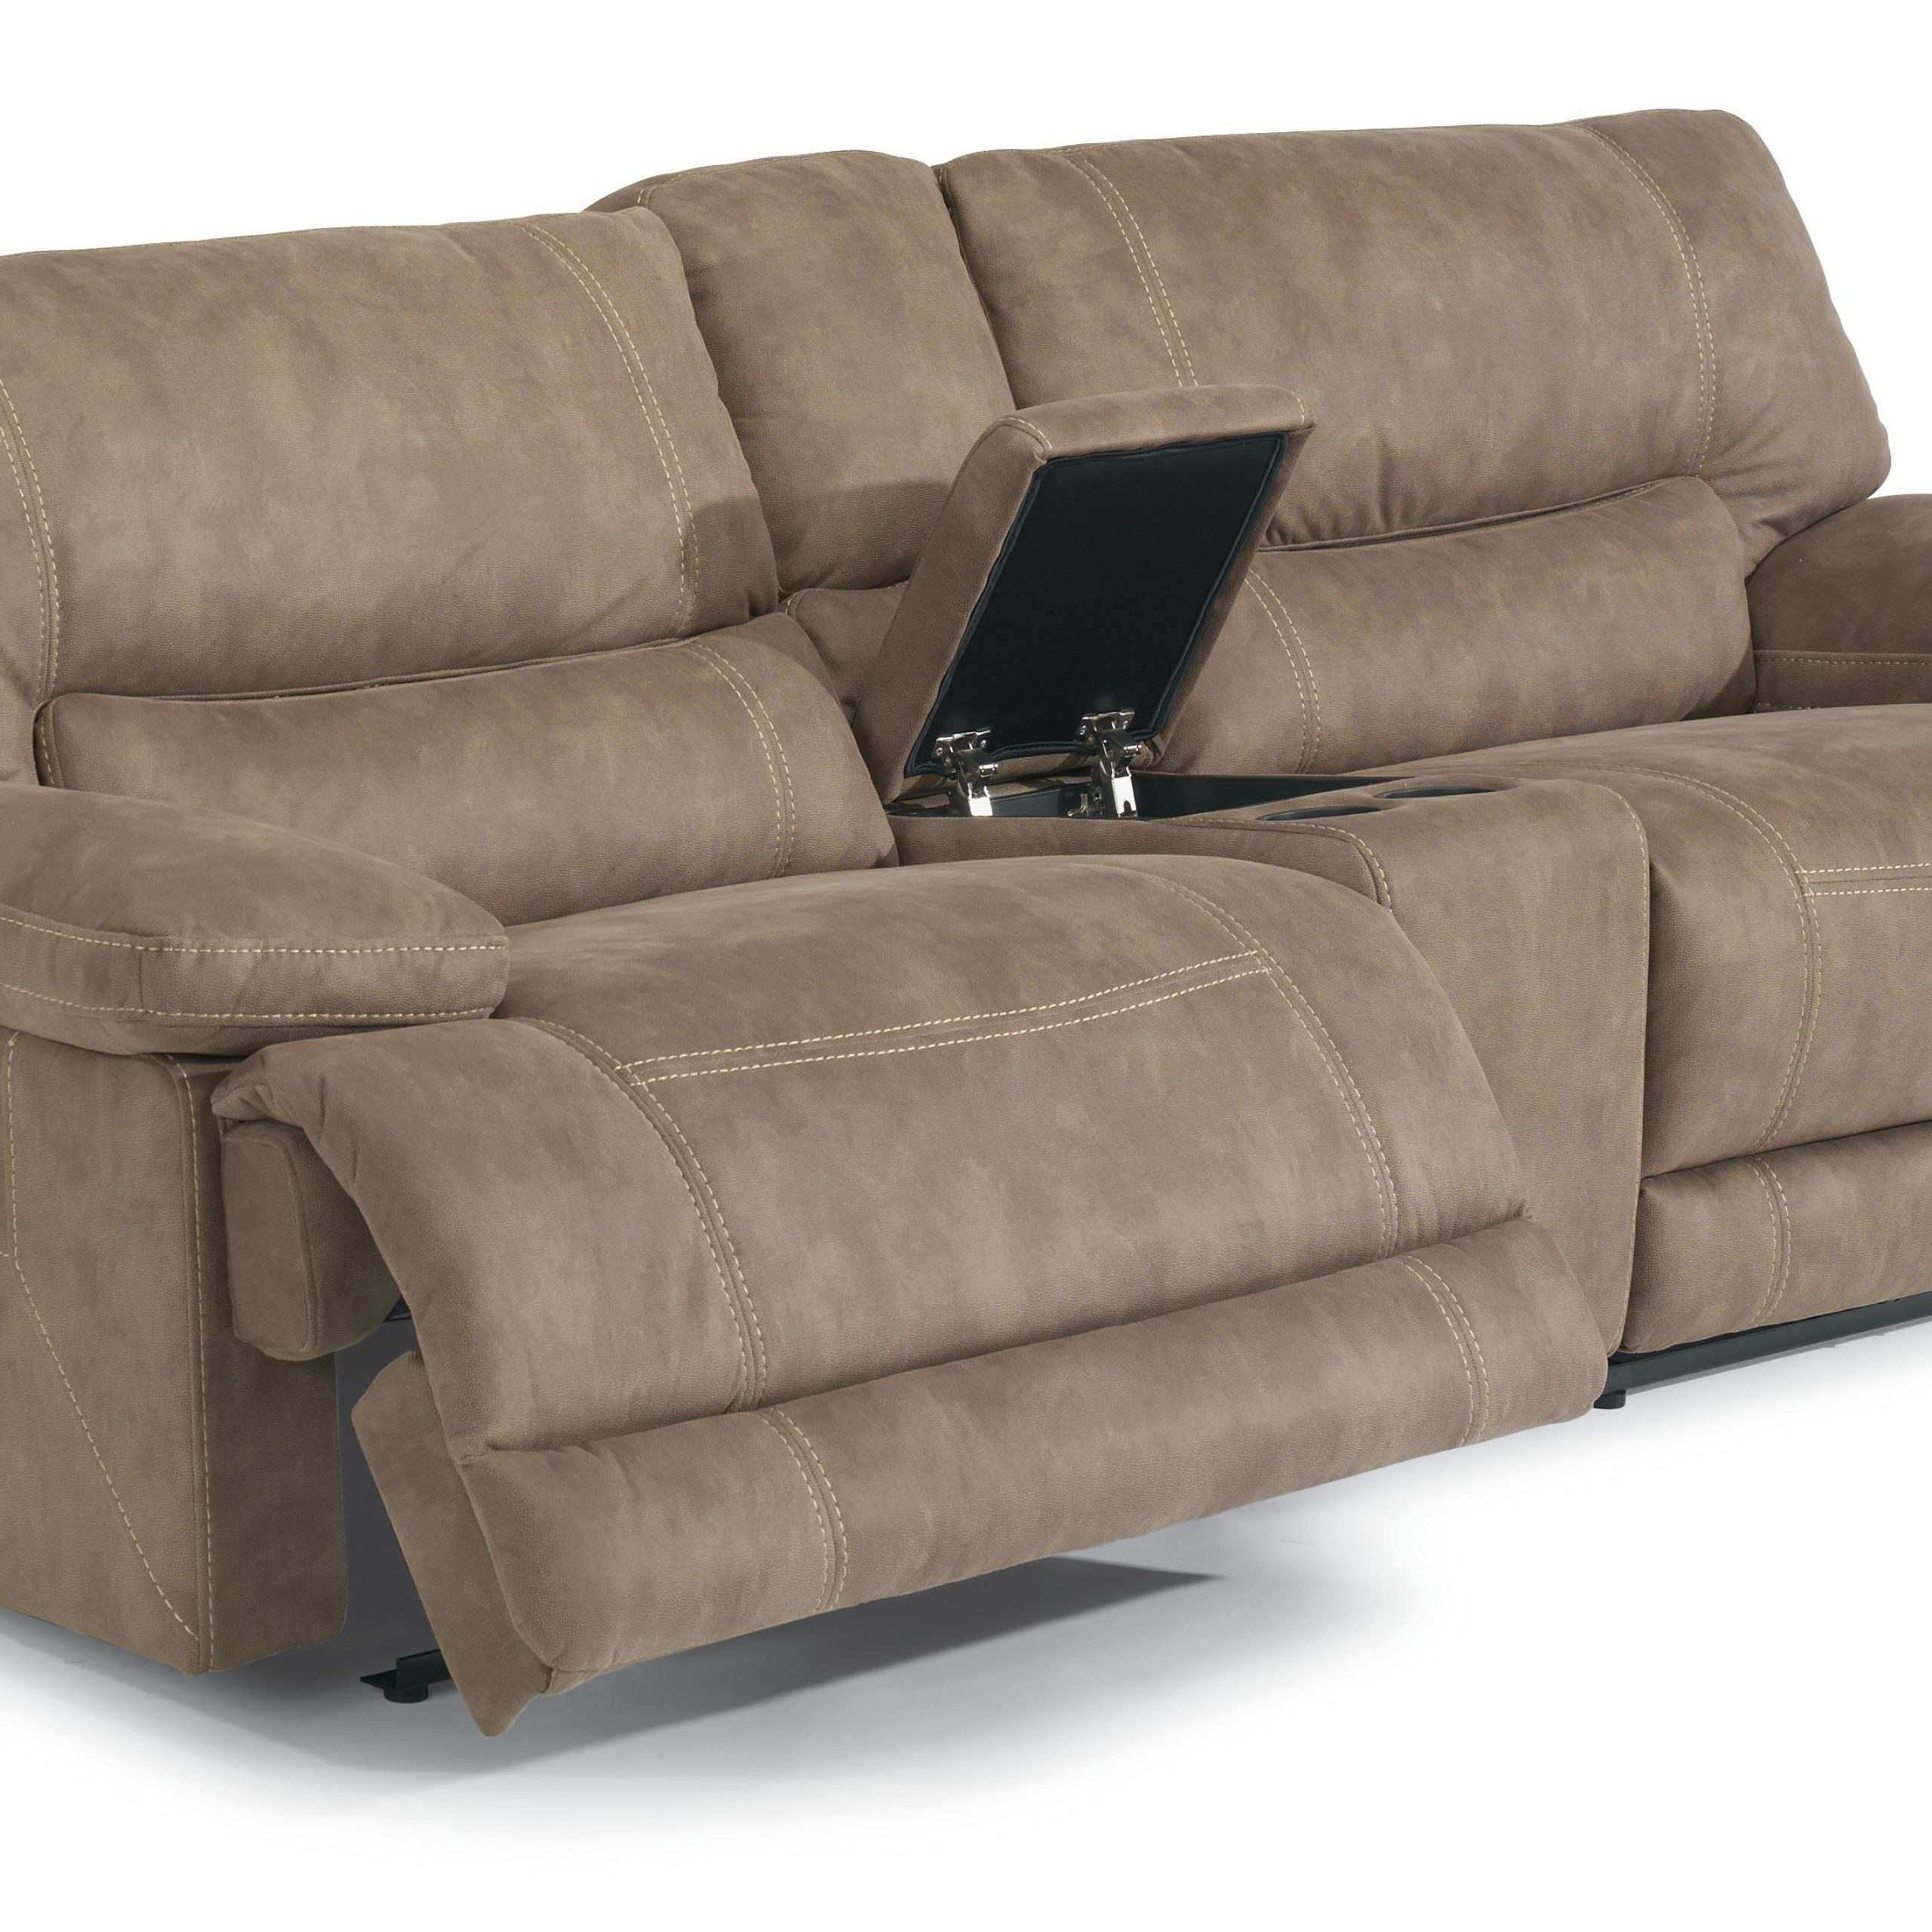 Flexsteel Latitudes – Delia Power Reclining Sectional Sofa For Power Reclining Sofas (View 8 of 15)